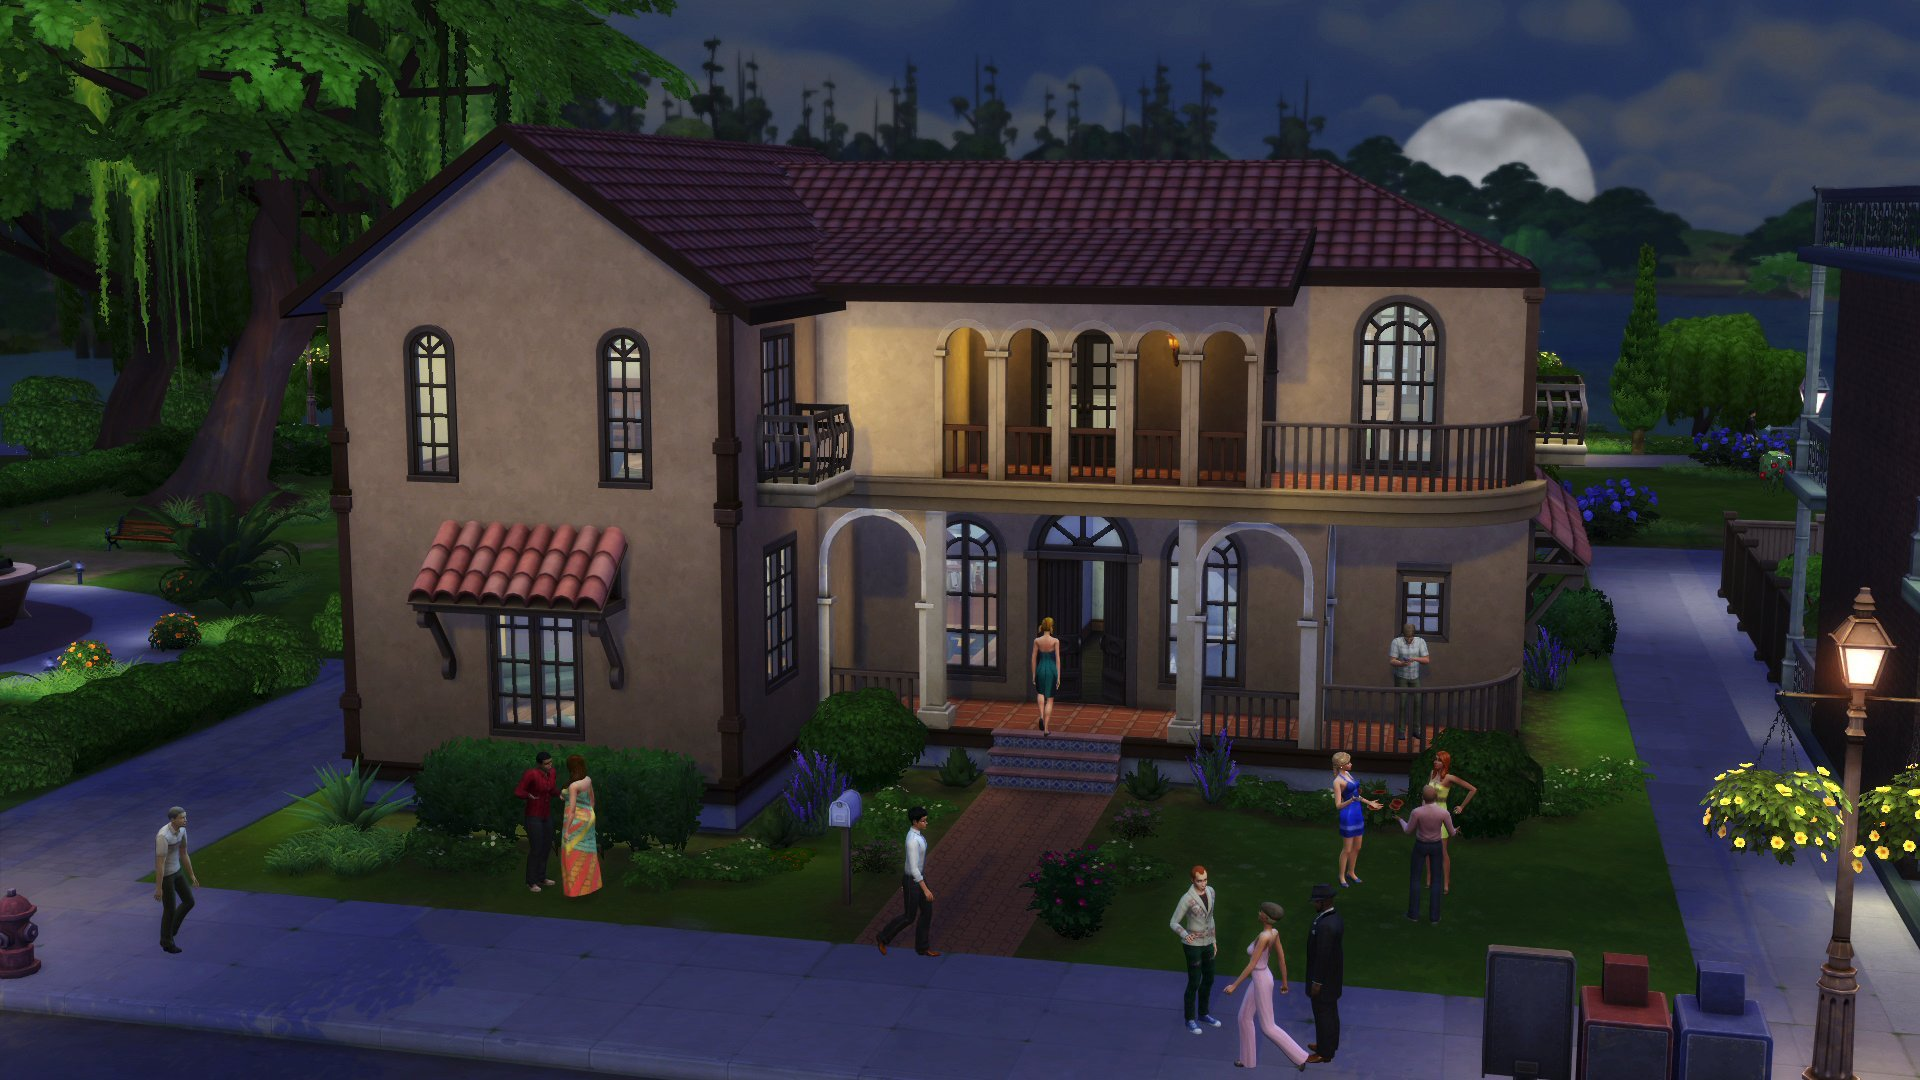 The sims 4 online game code best cheap software Create a house online game